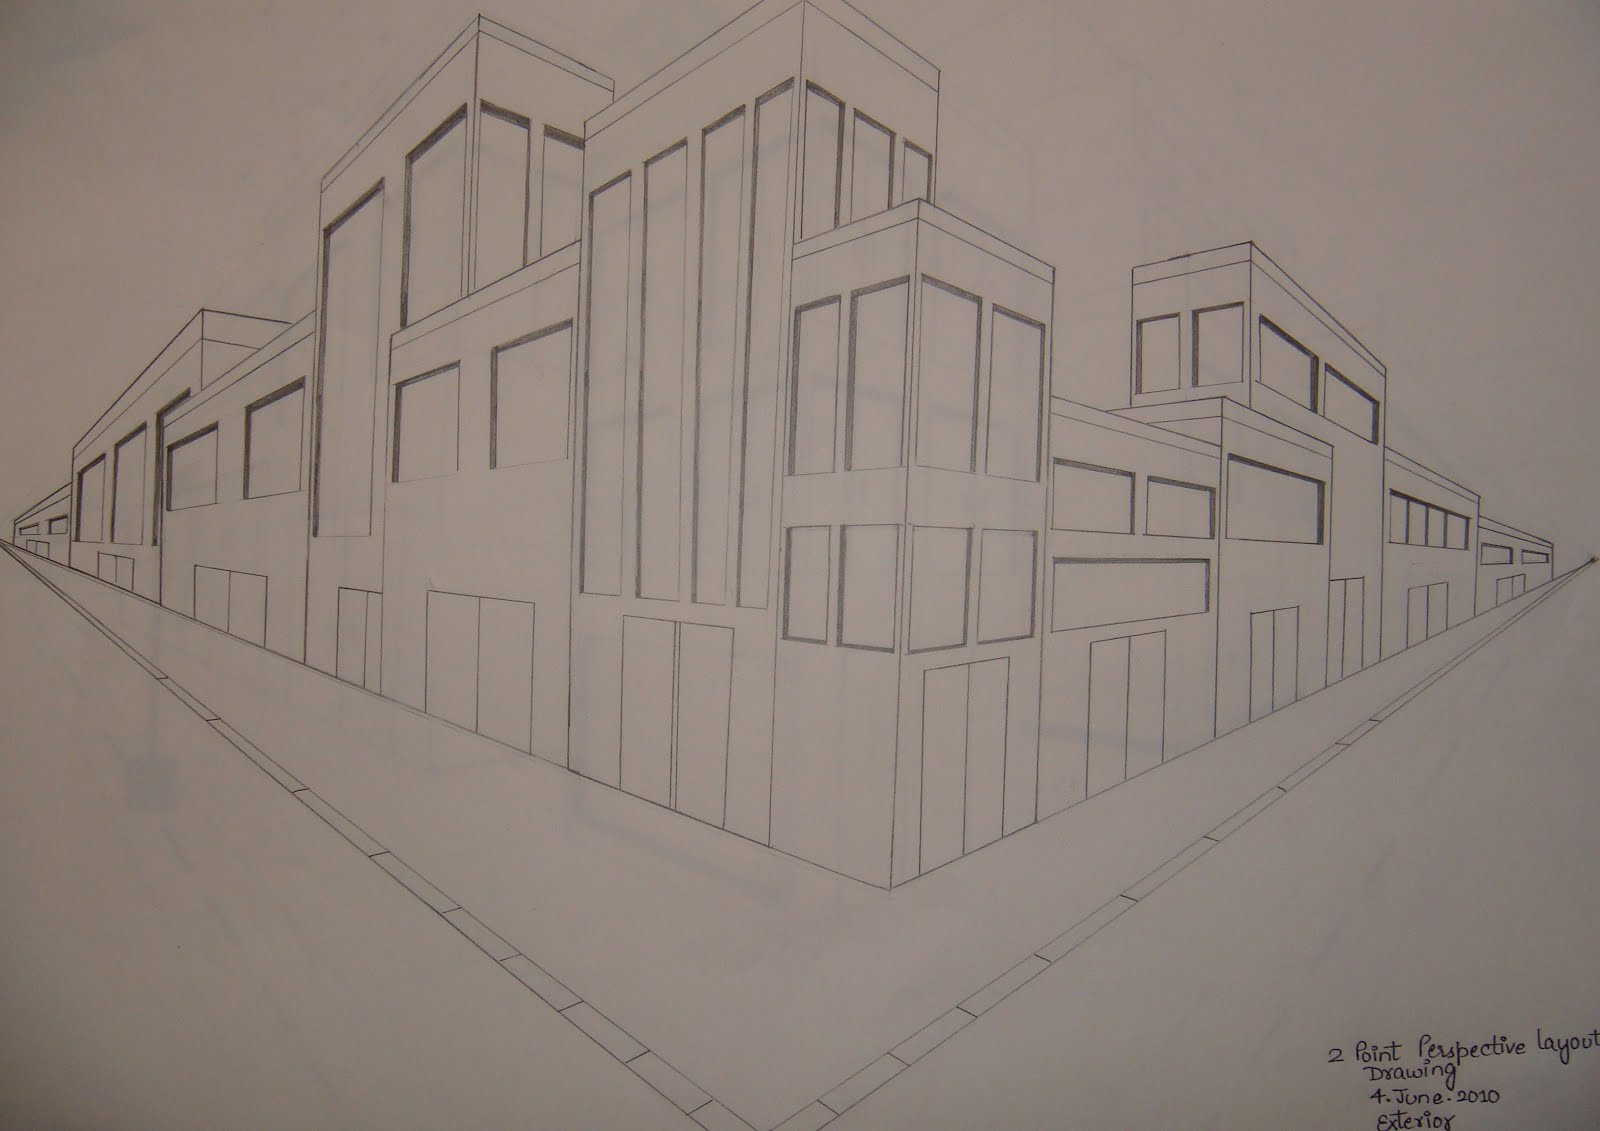 Art and animation 2 point perspective layout drawings for Exterior 1 point perspective